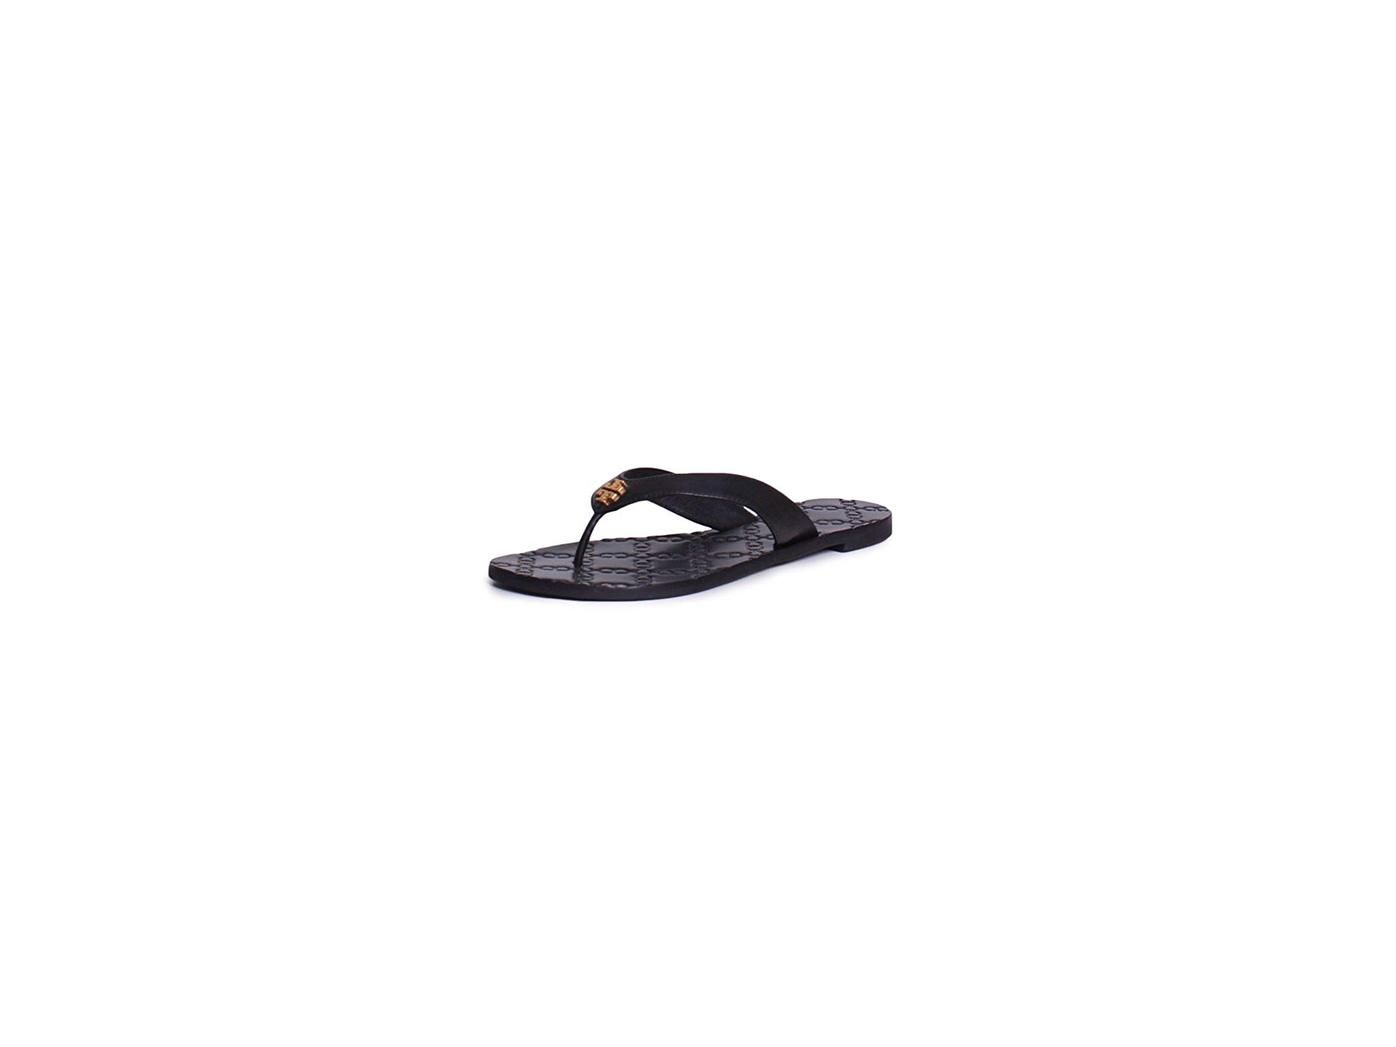 d7efd63dc46 Tory Burch - Tory Burch Monroe Metallic Thong Sandals Flip Flop ...